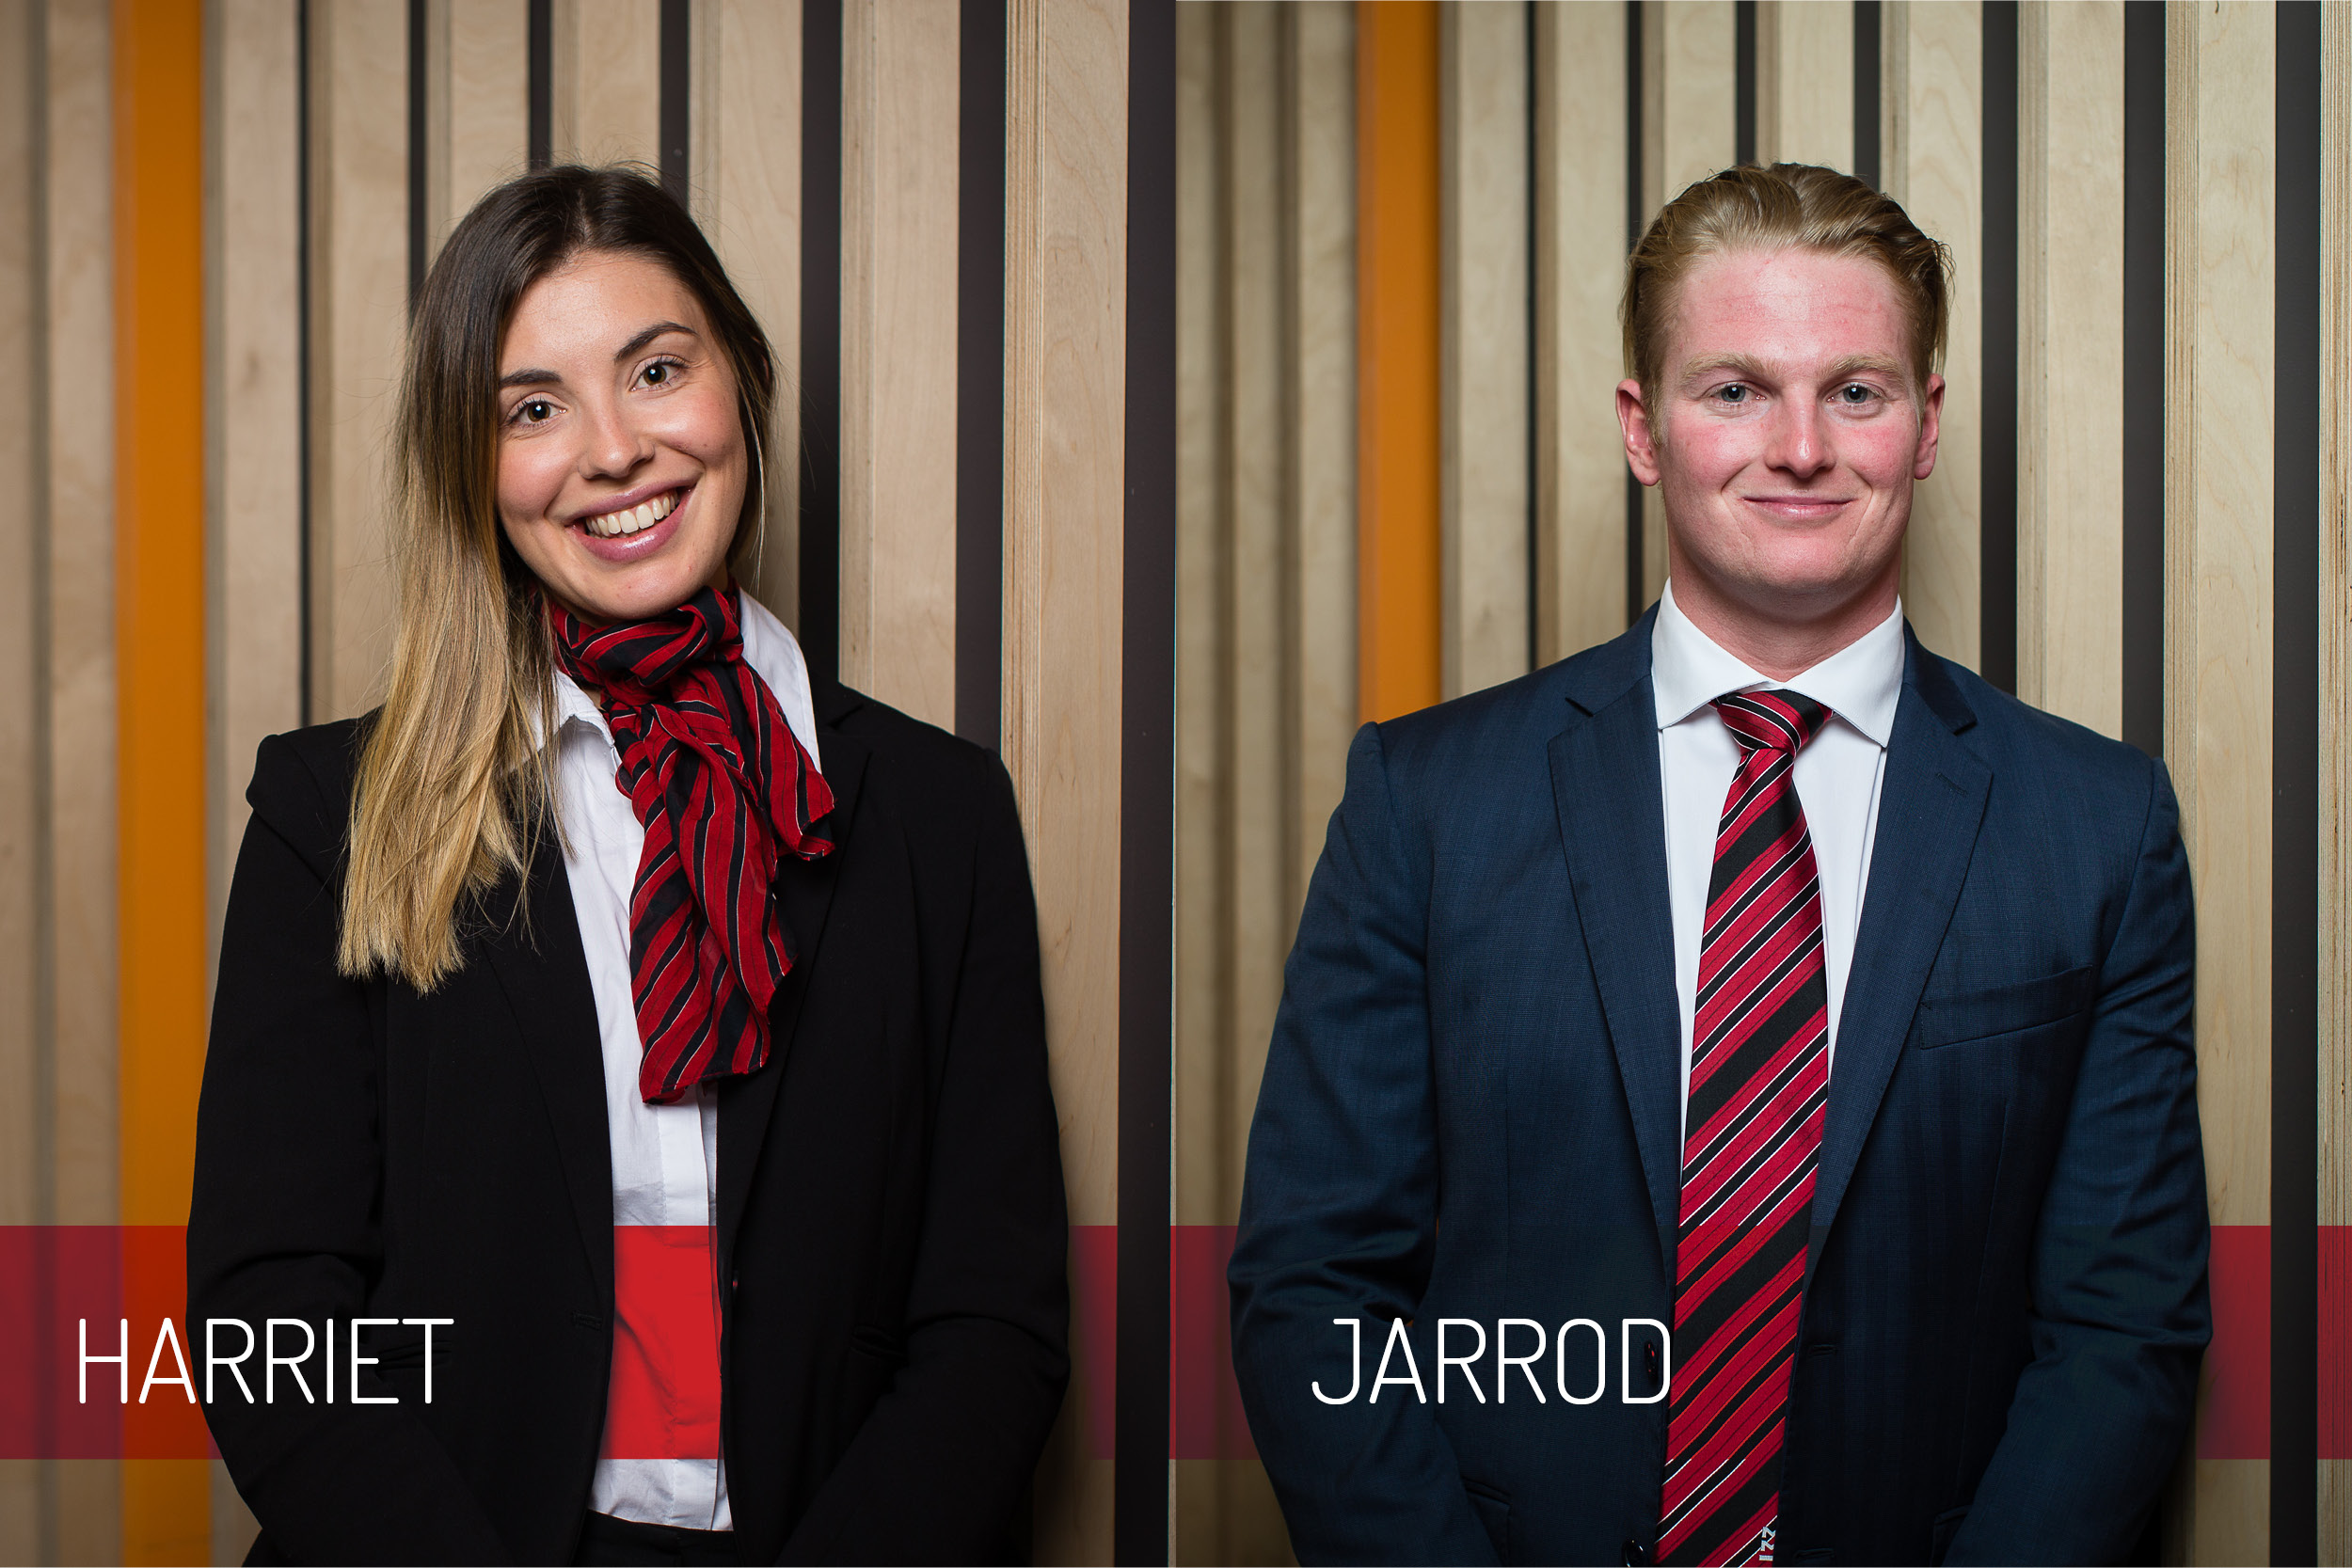 Harriet & Jarrod named as members of Property Council Committee